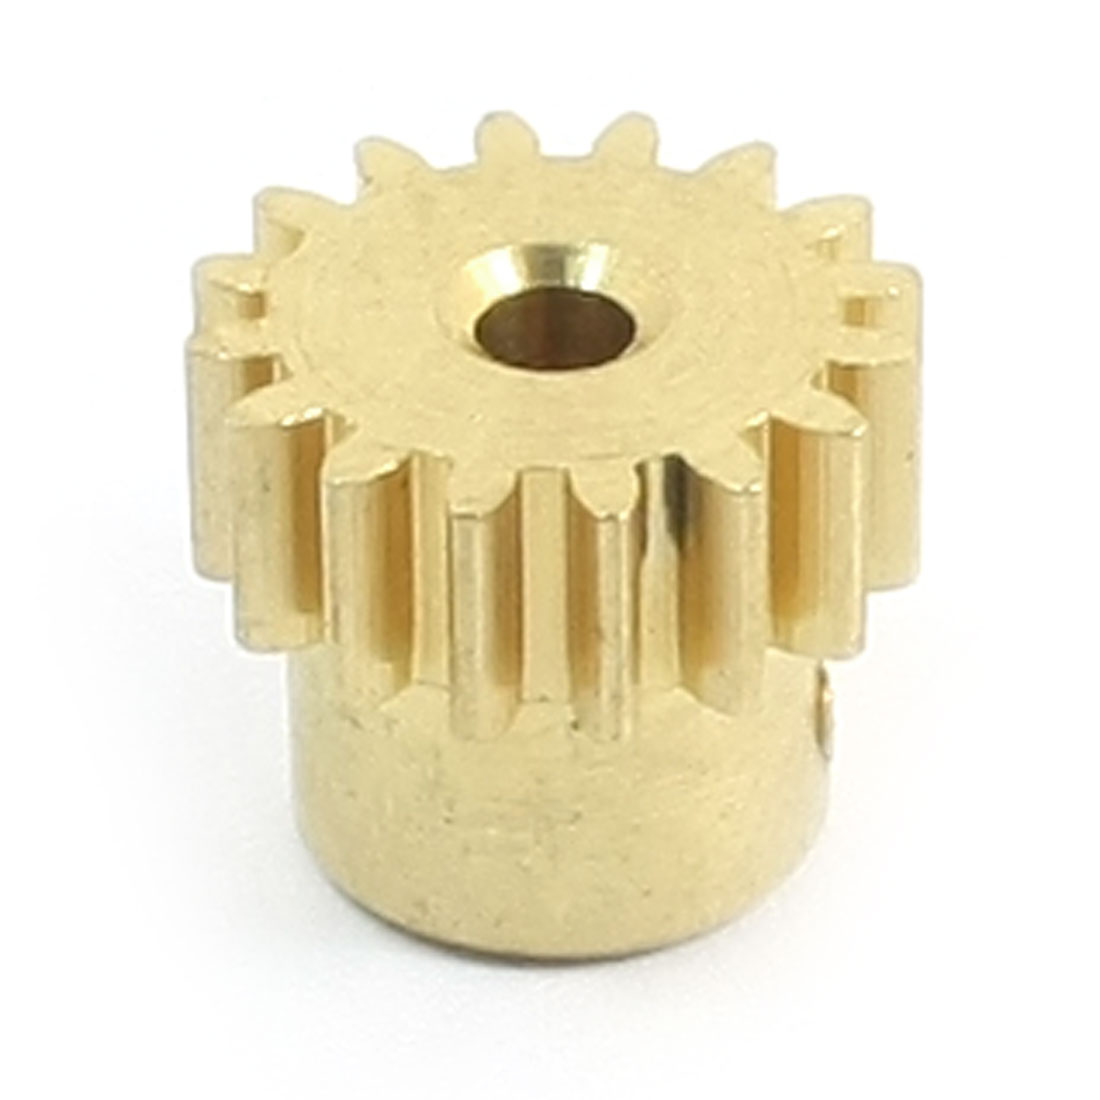 Repairing Motor Gear 26T 28019 Upgrade Spare Parts for RC Model 1:16 Car